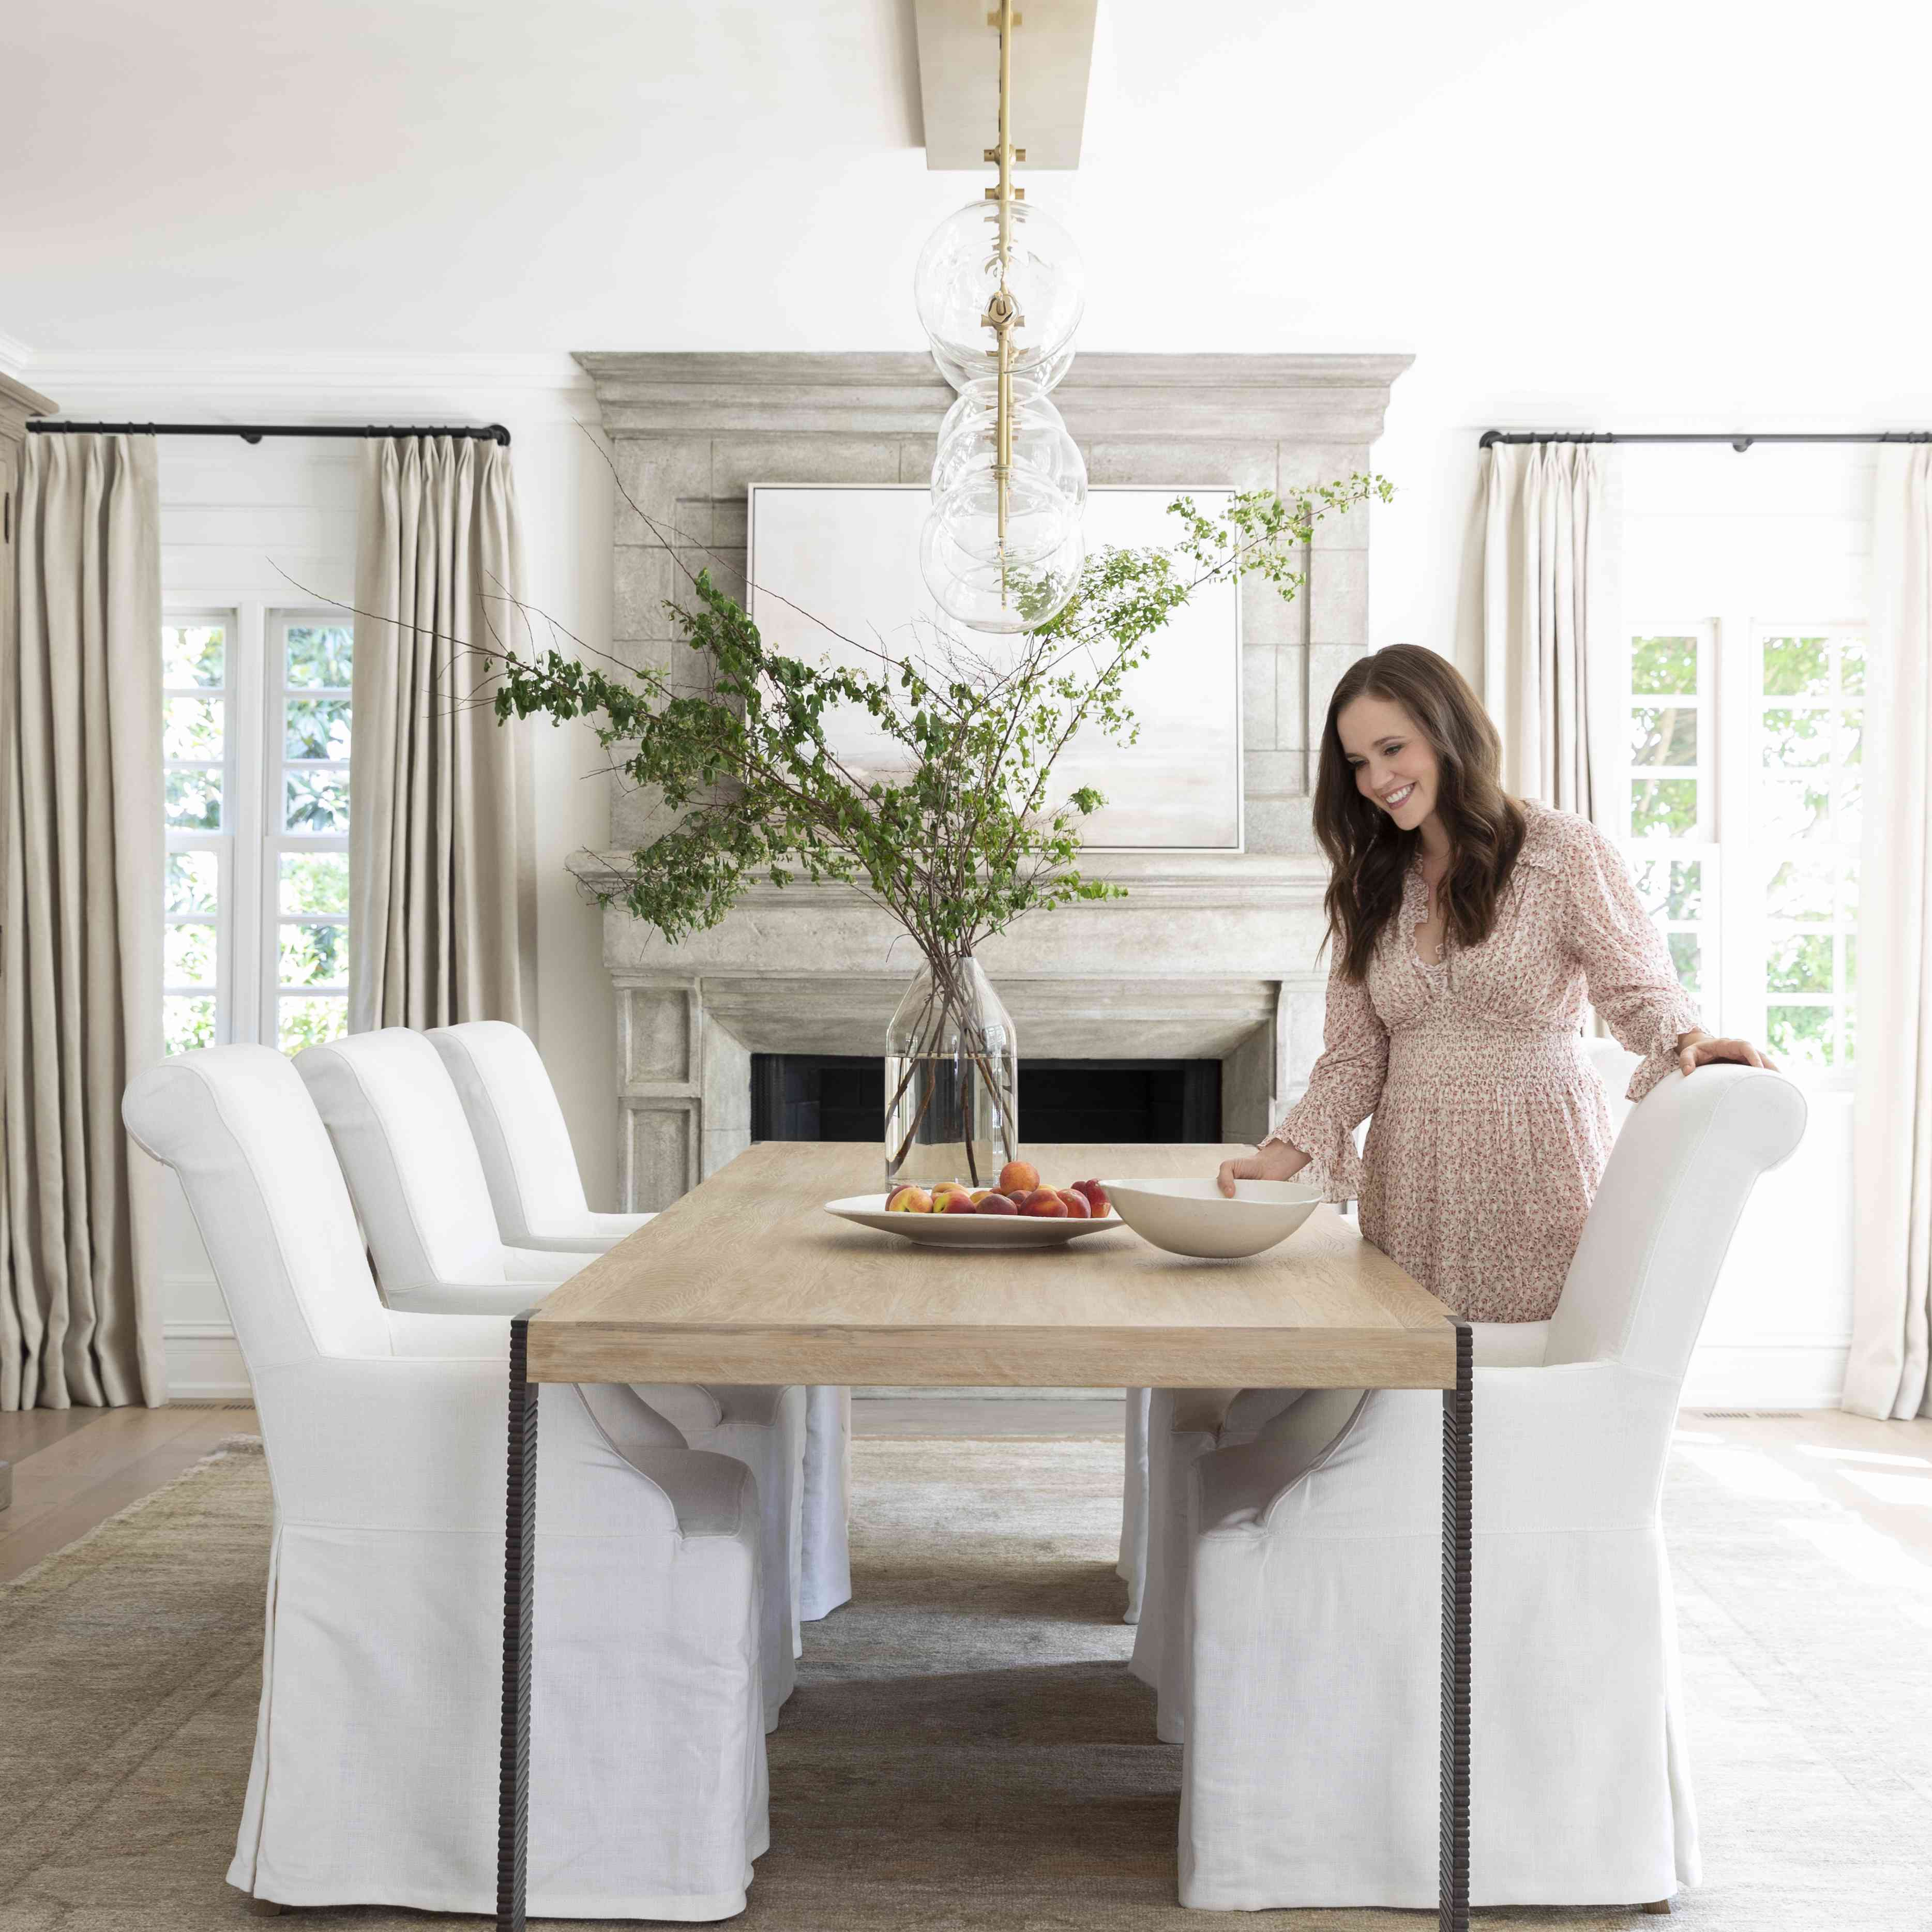 Marie Flanigan poses at a dining table